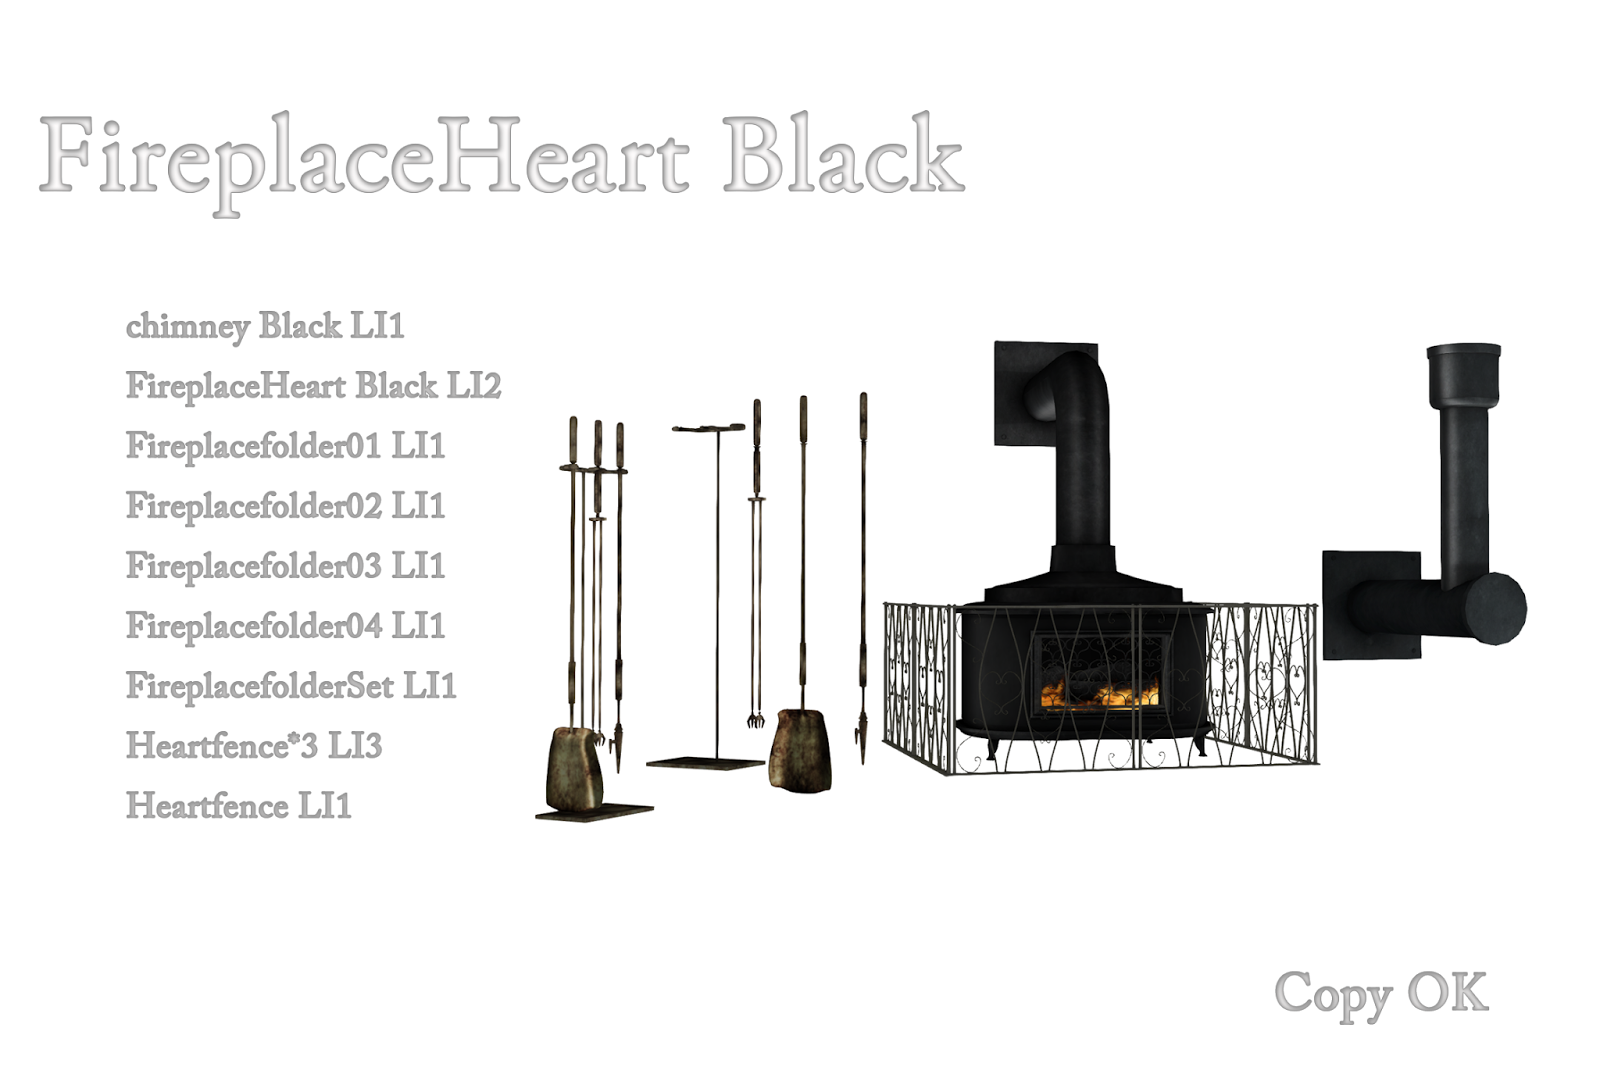 FireplaceHeart